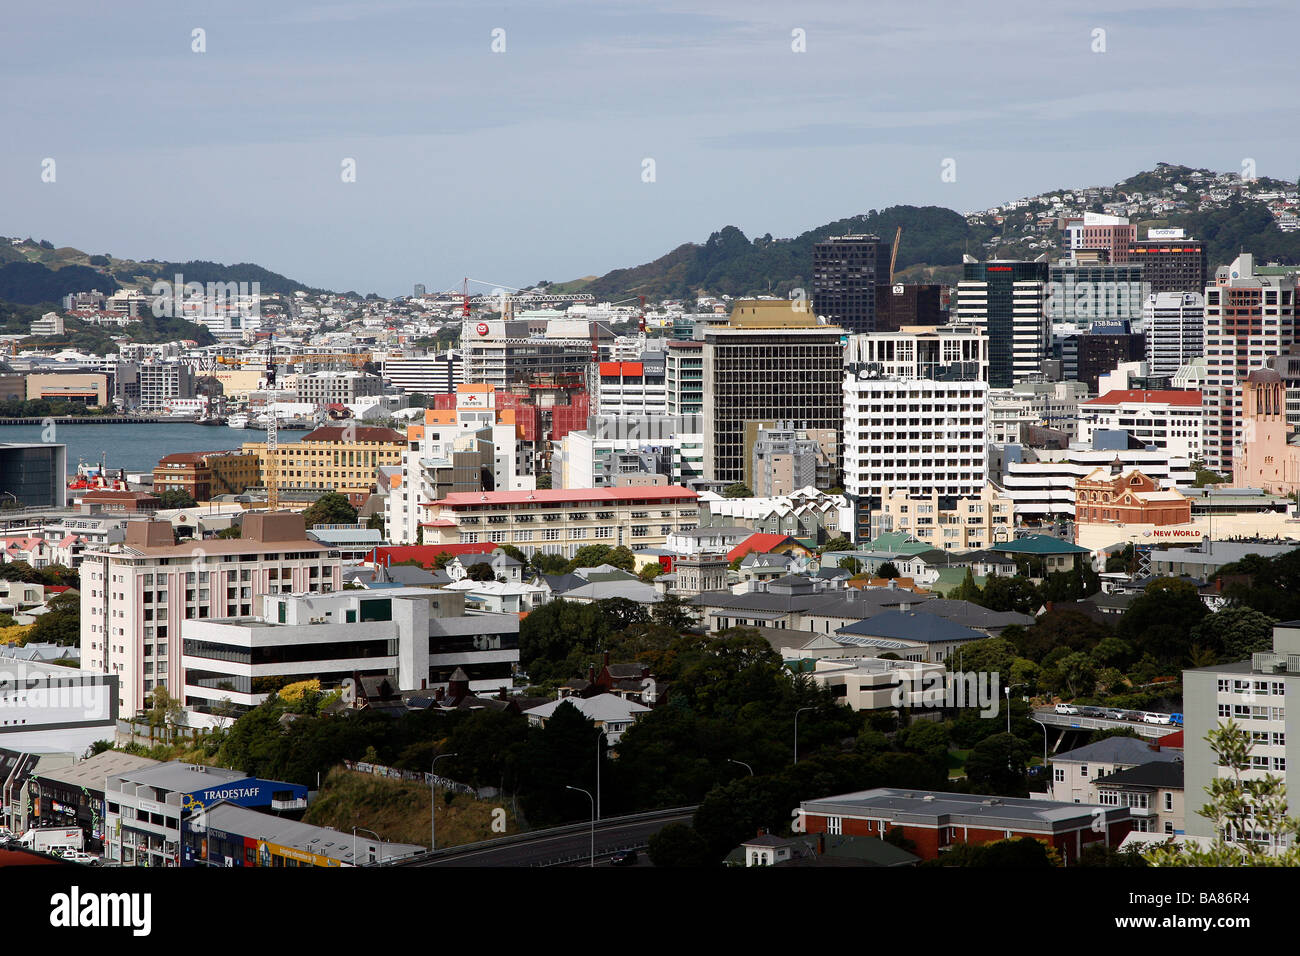 View of the city of Wellington, New Zealand - Stock Image